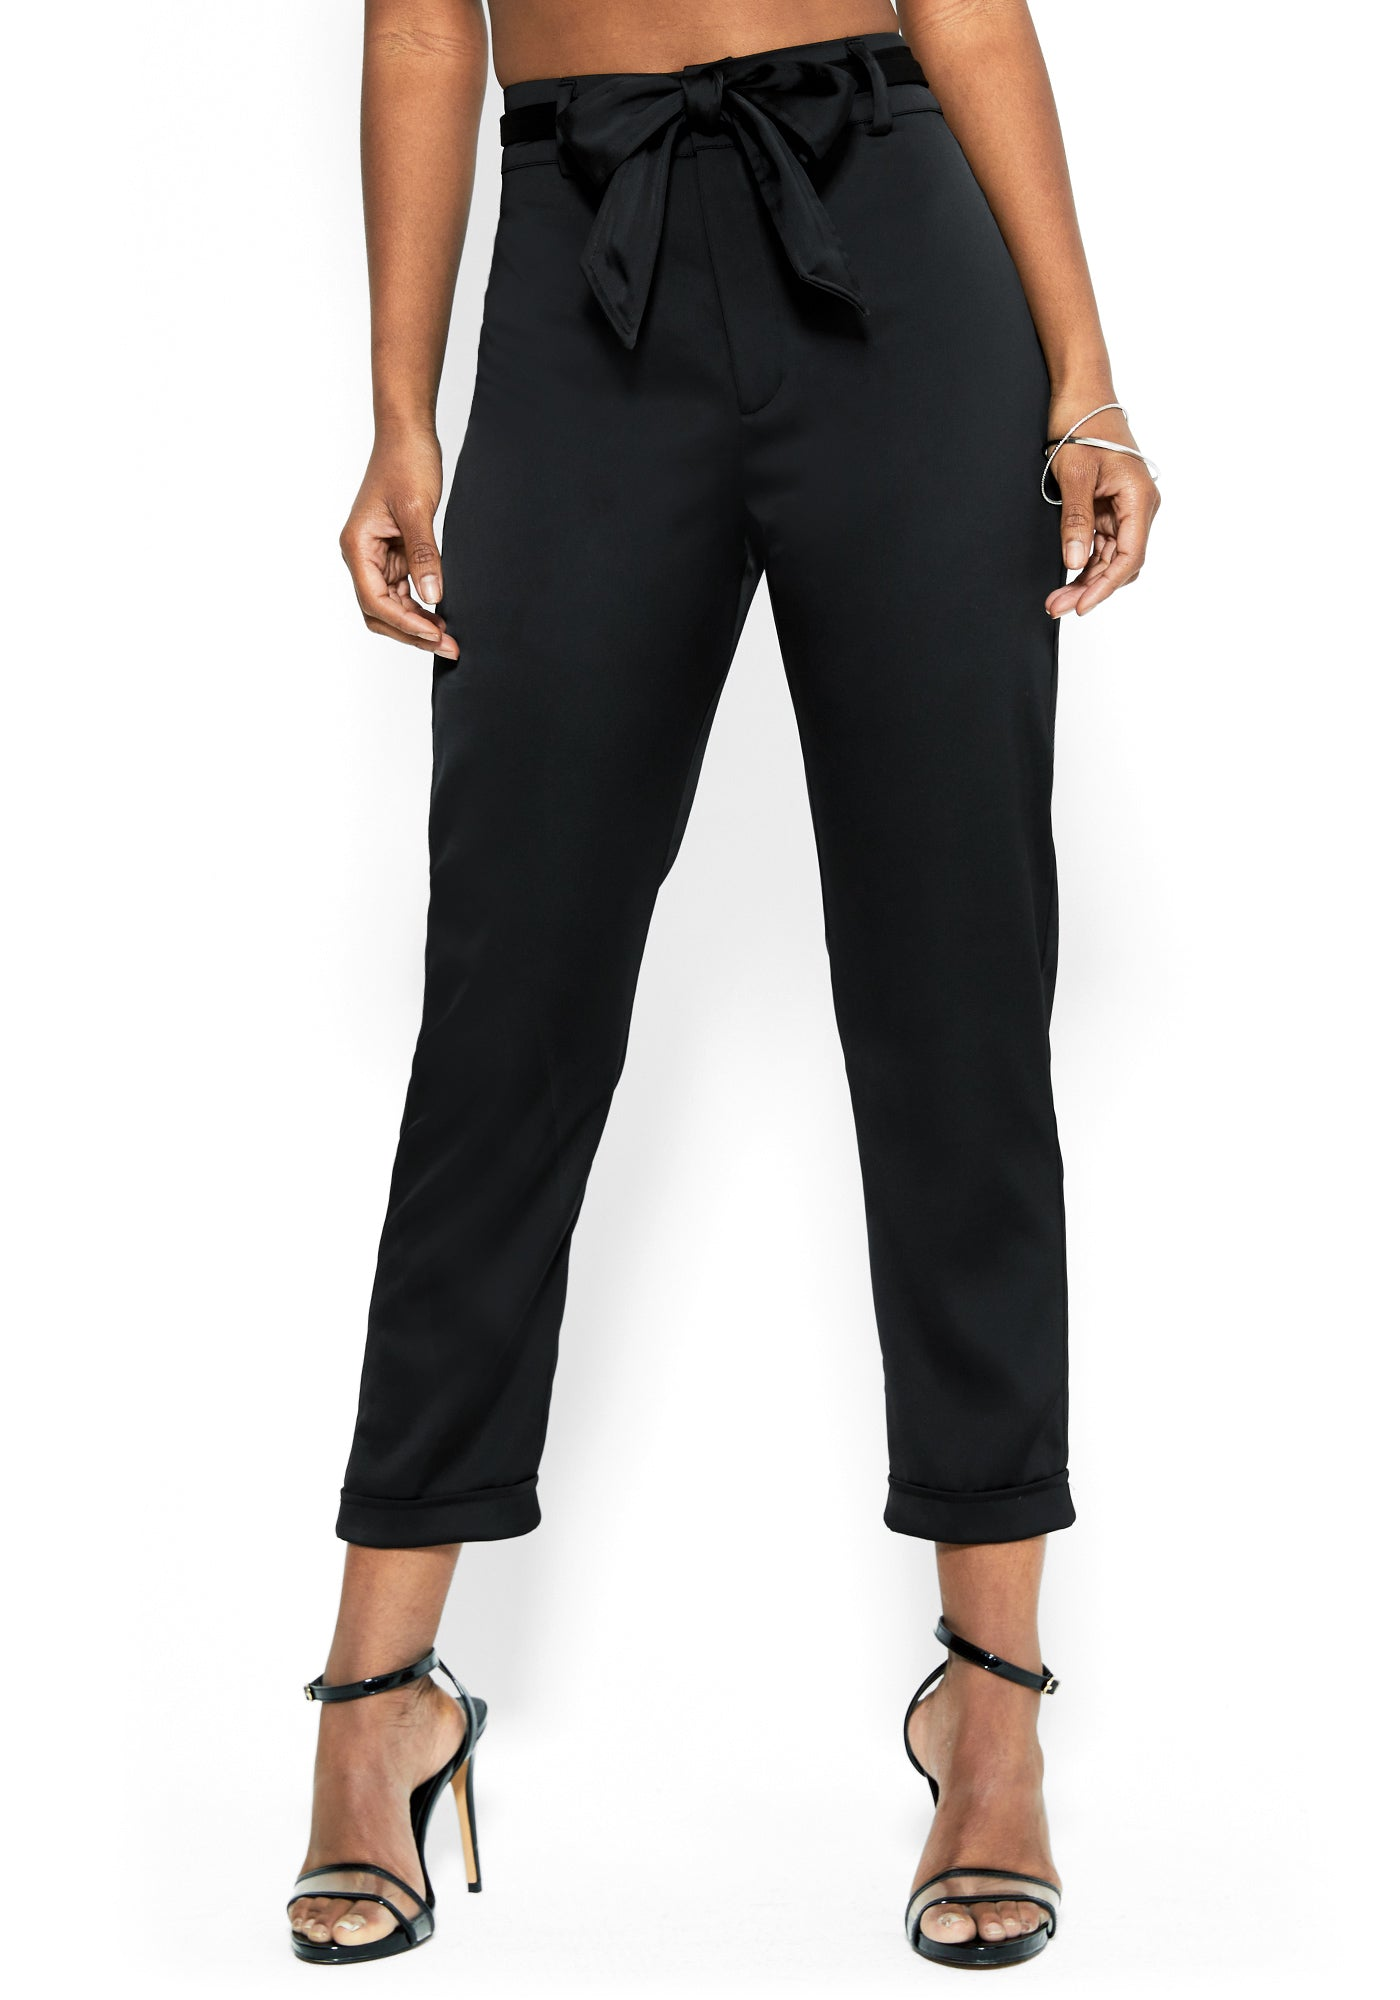 Bebe Women's Stretch Satin Bow Waist Trouser, Size 00 in BLACK Polyester